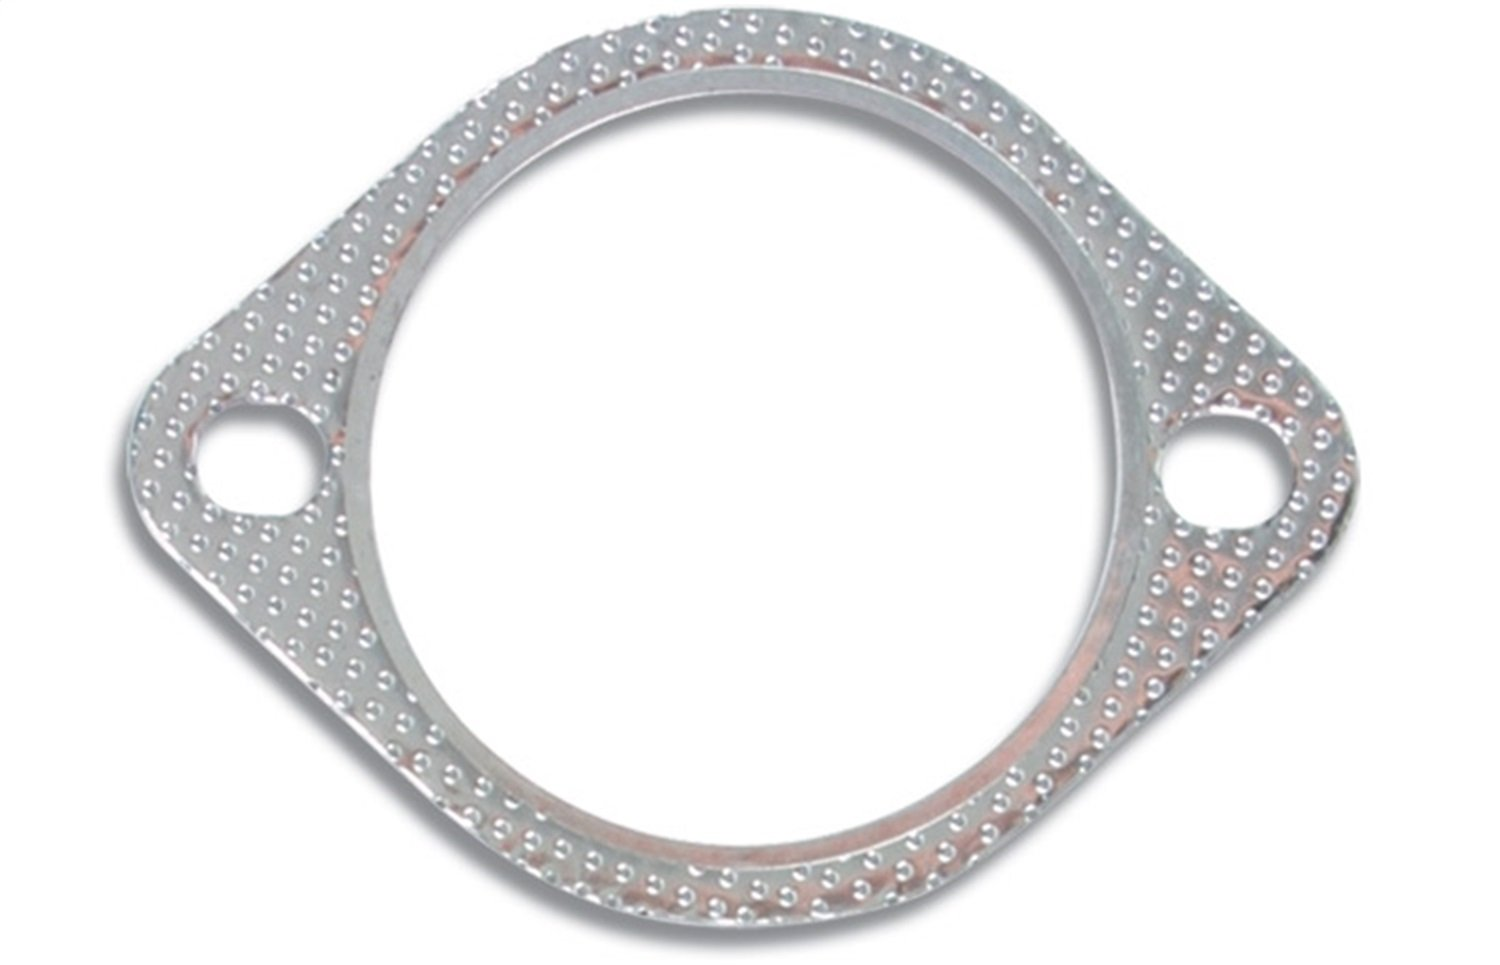 Vibrant (1465) 2-Bolt High Temperature Exhaust Gasket Vibrant Performance